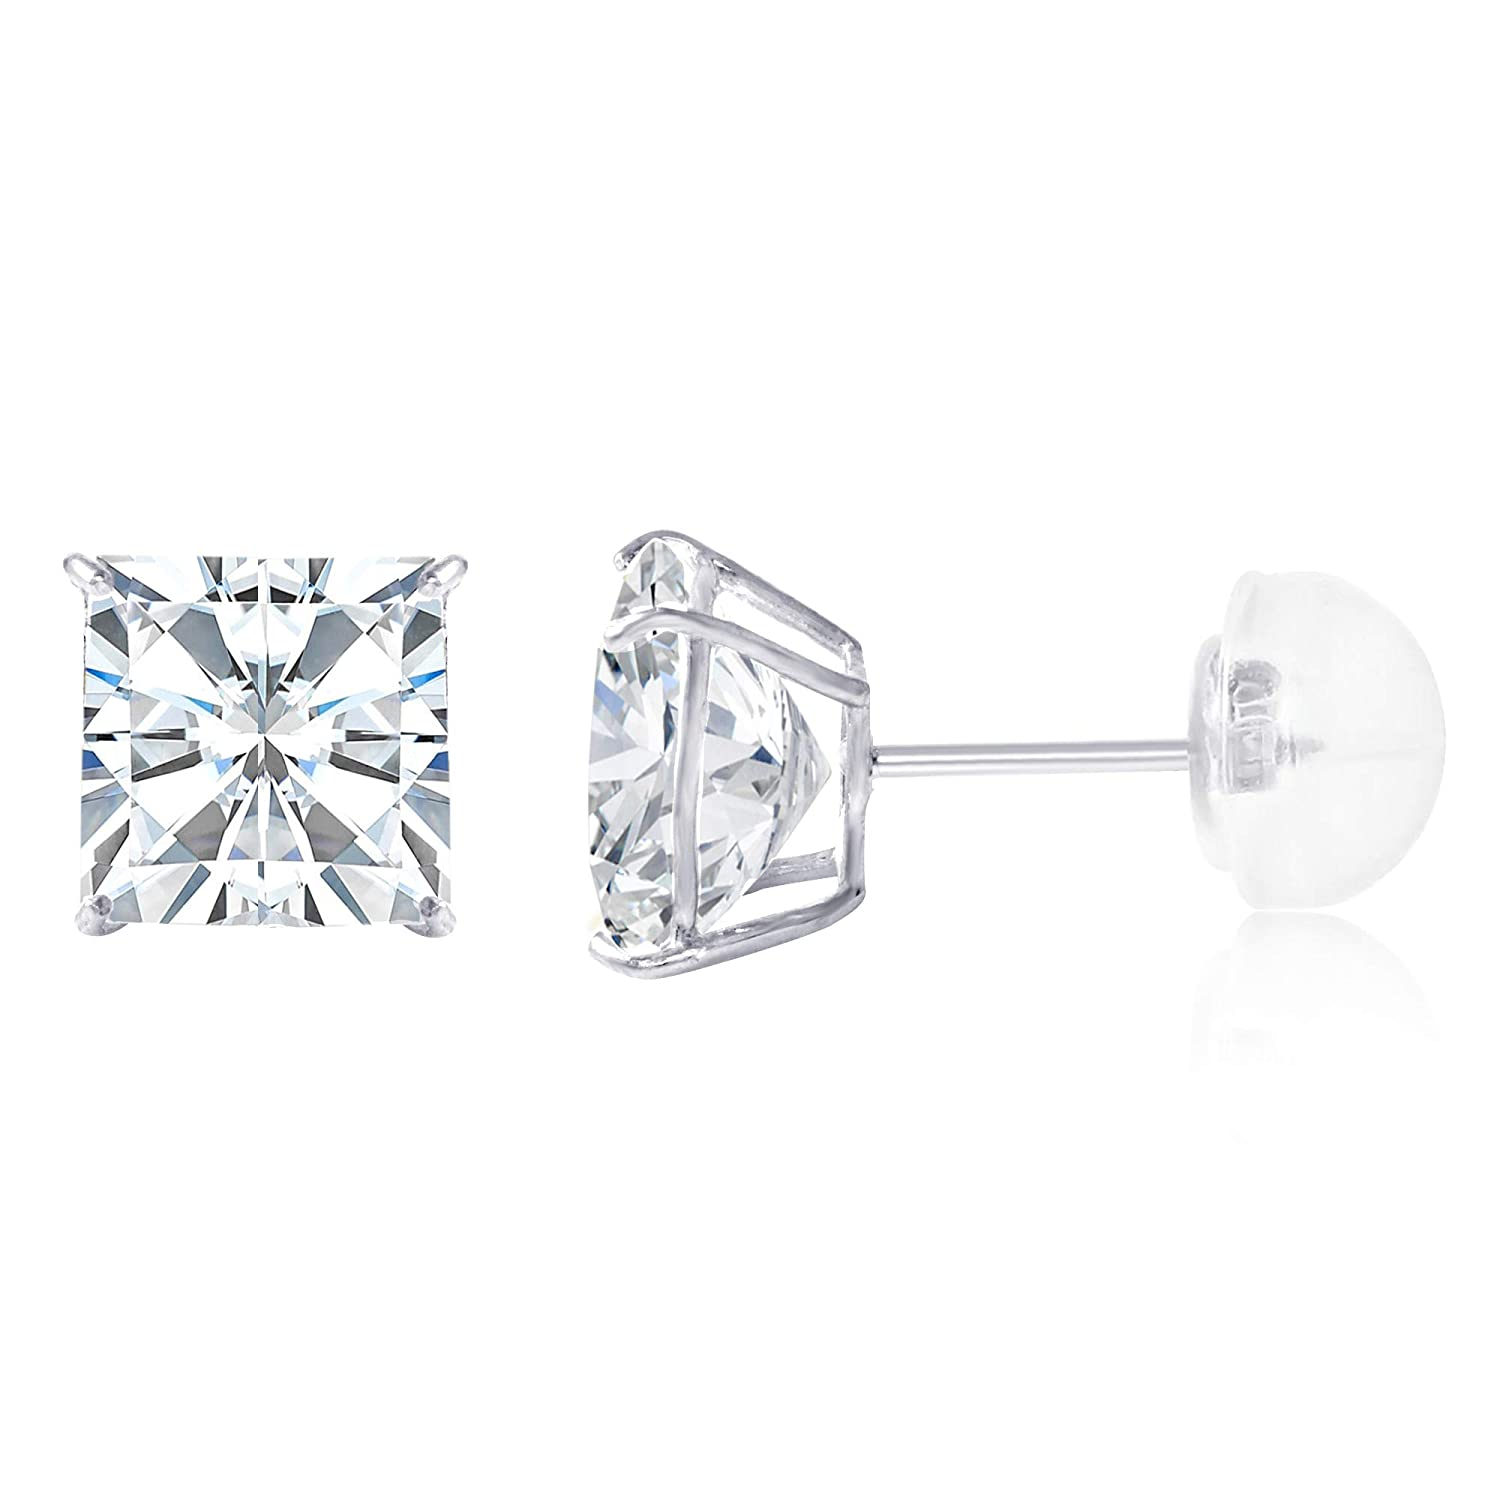 14K Yellow OR White Gold Square Solitaire Princess Cut Cubic Zirconia CZ Stud Push Back Earrings in Various Sizes Ioka